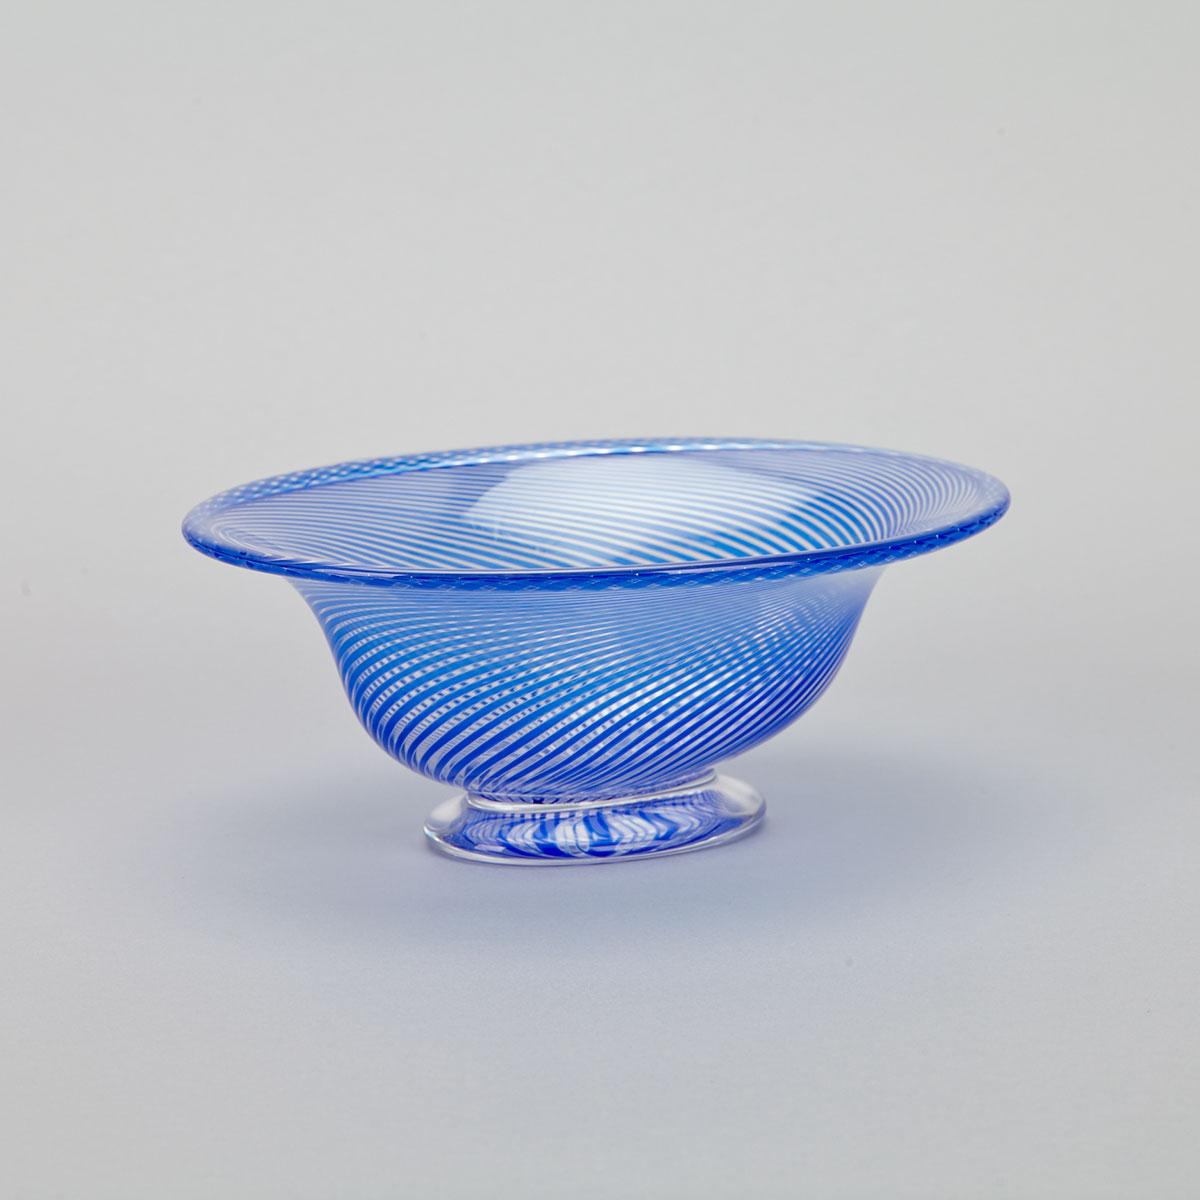 Orrefors Graal Glass Oval Bowl, Edward Hald, mid-20th century